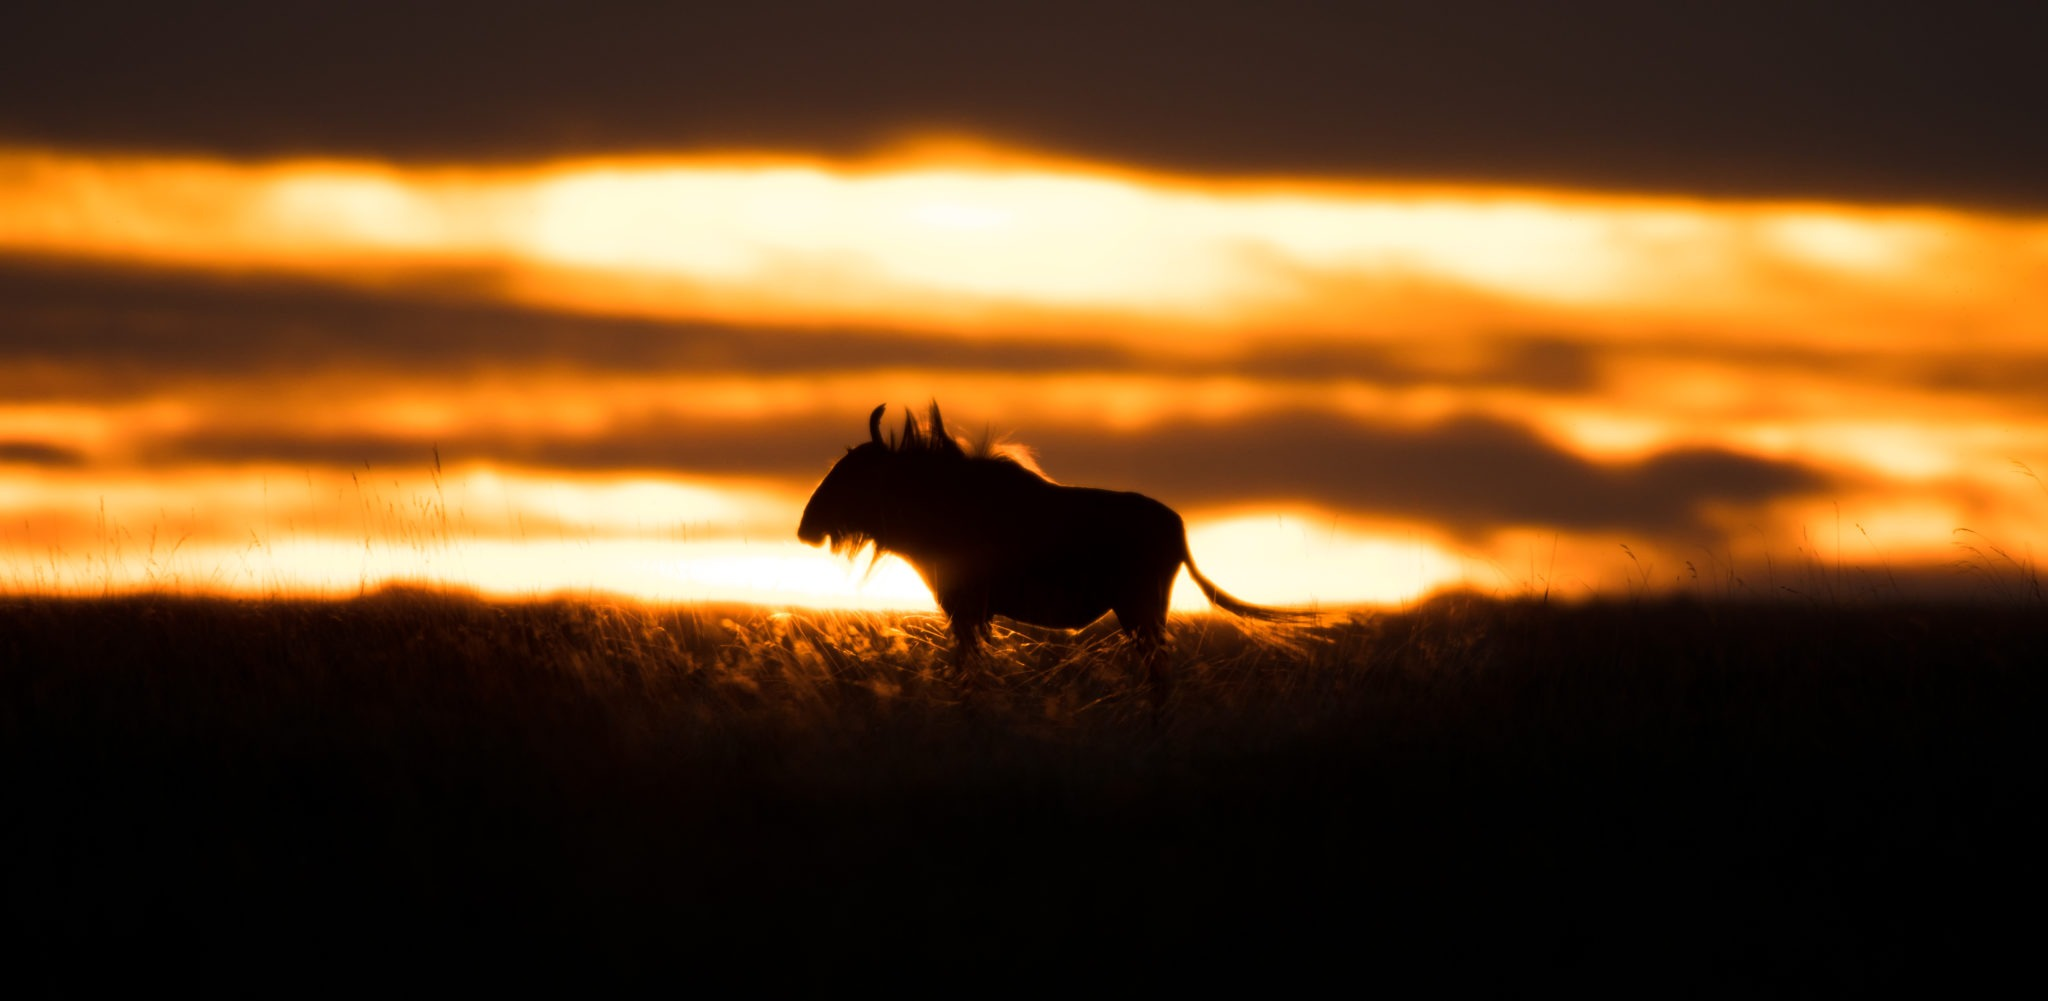 luiwa wildebeest sunset